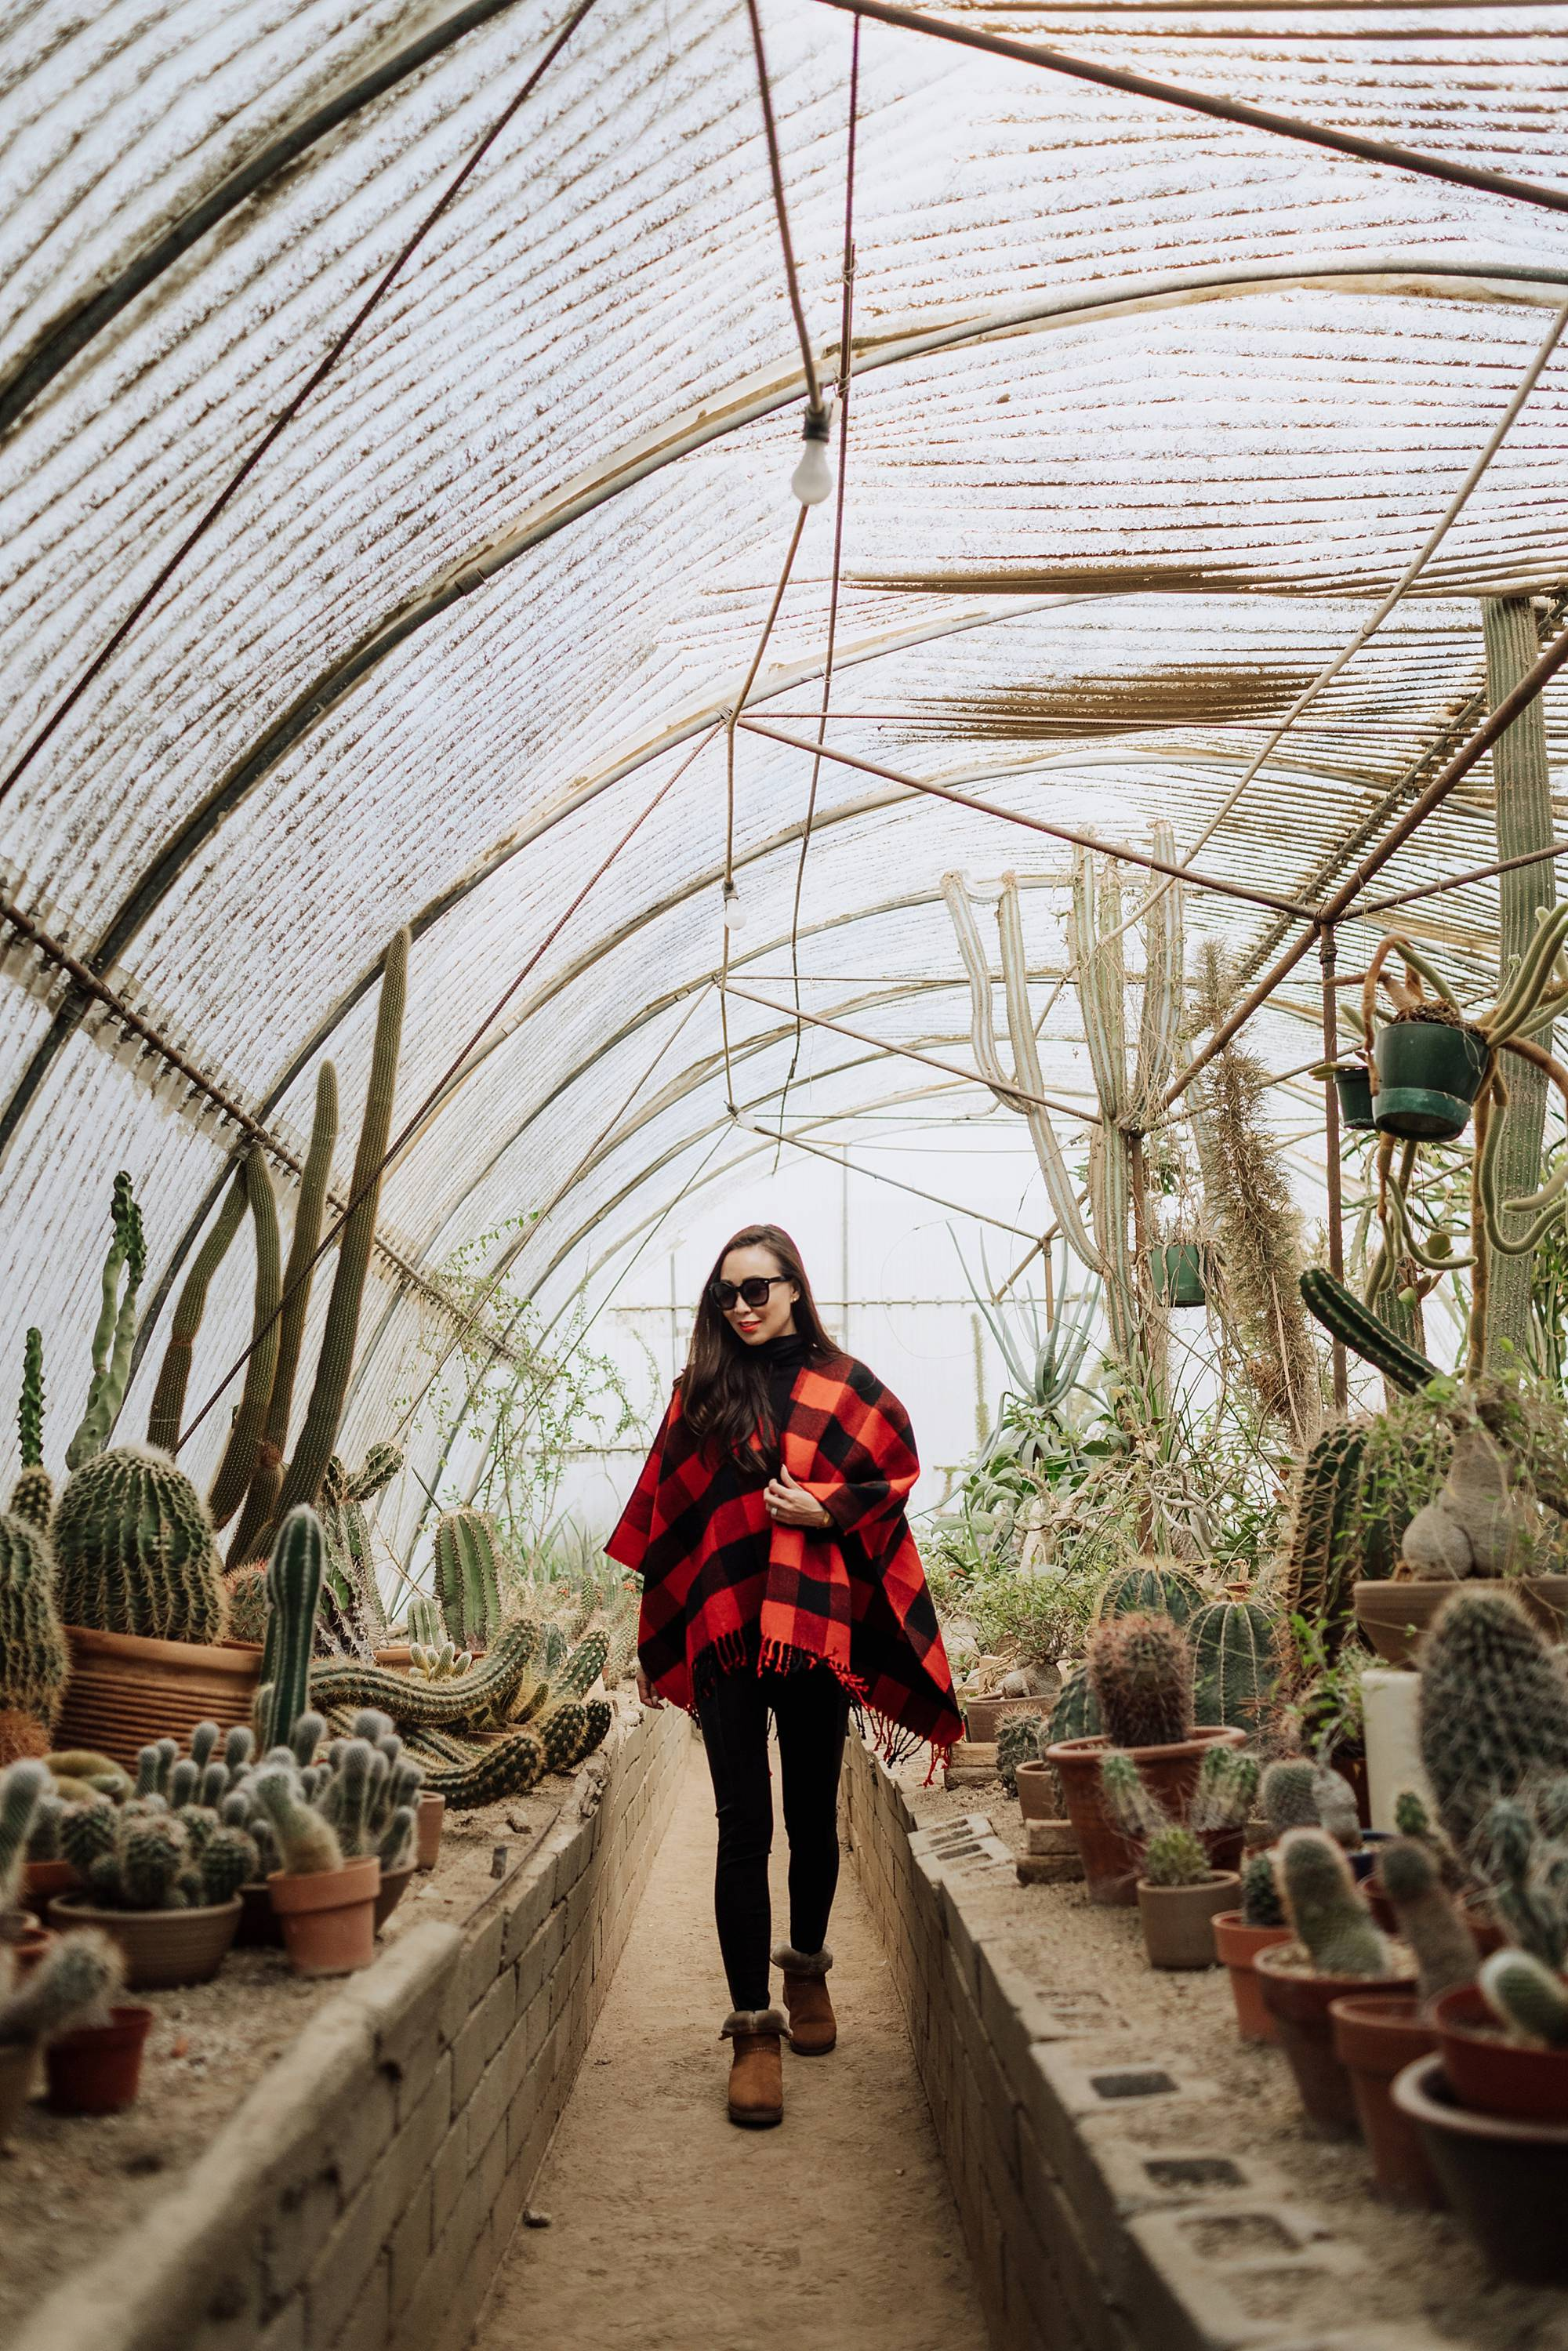 Moorten Botanical Garden Palm Springs cactus garden outdoor buffalo check poncho Abercrombie on phoenix travel and lifestyle blogger Diana Elizabeth wearing cozy shearling boots by FitFlop #cactusgarden #palmsprings #greenhouse